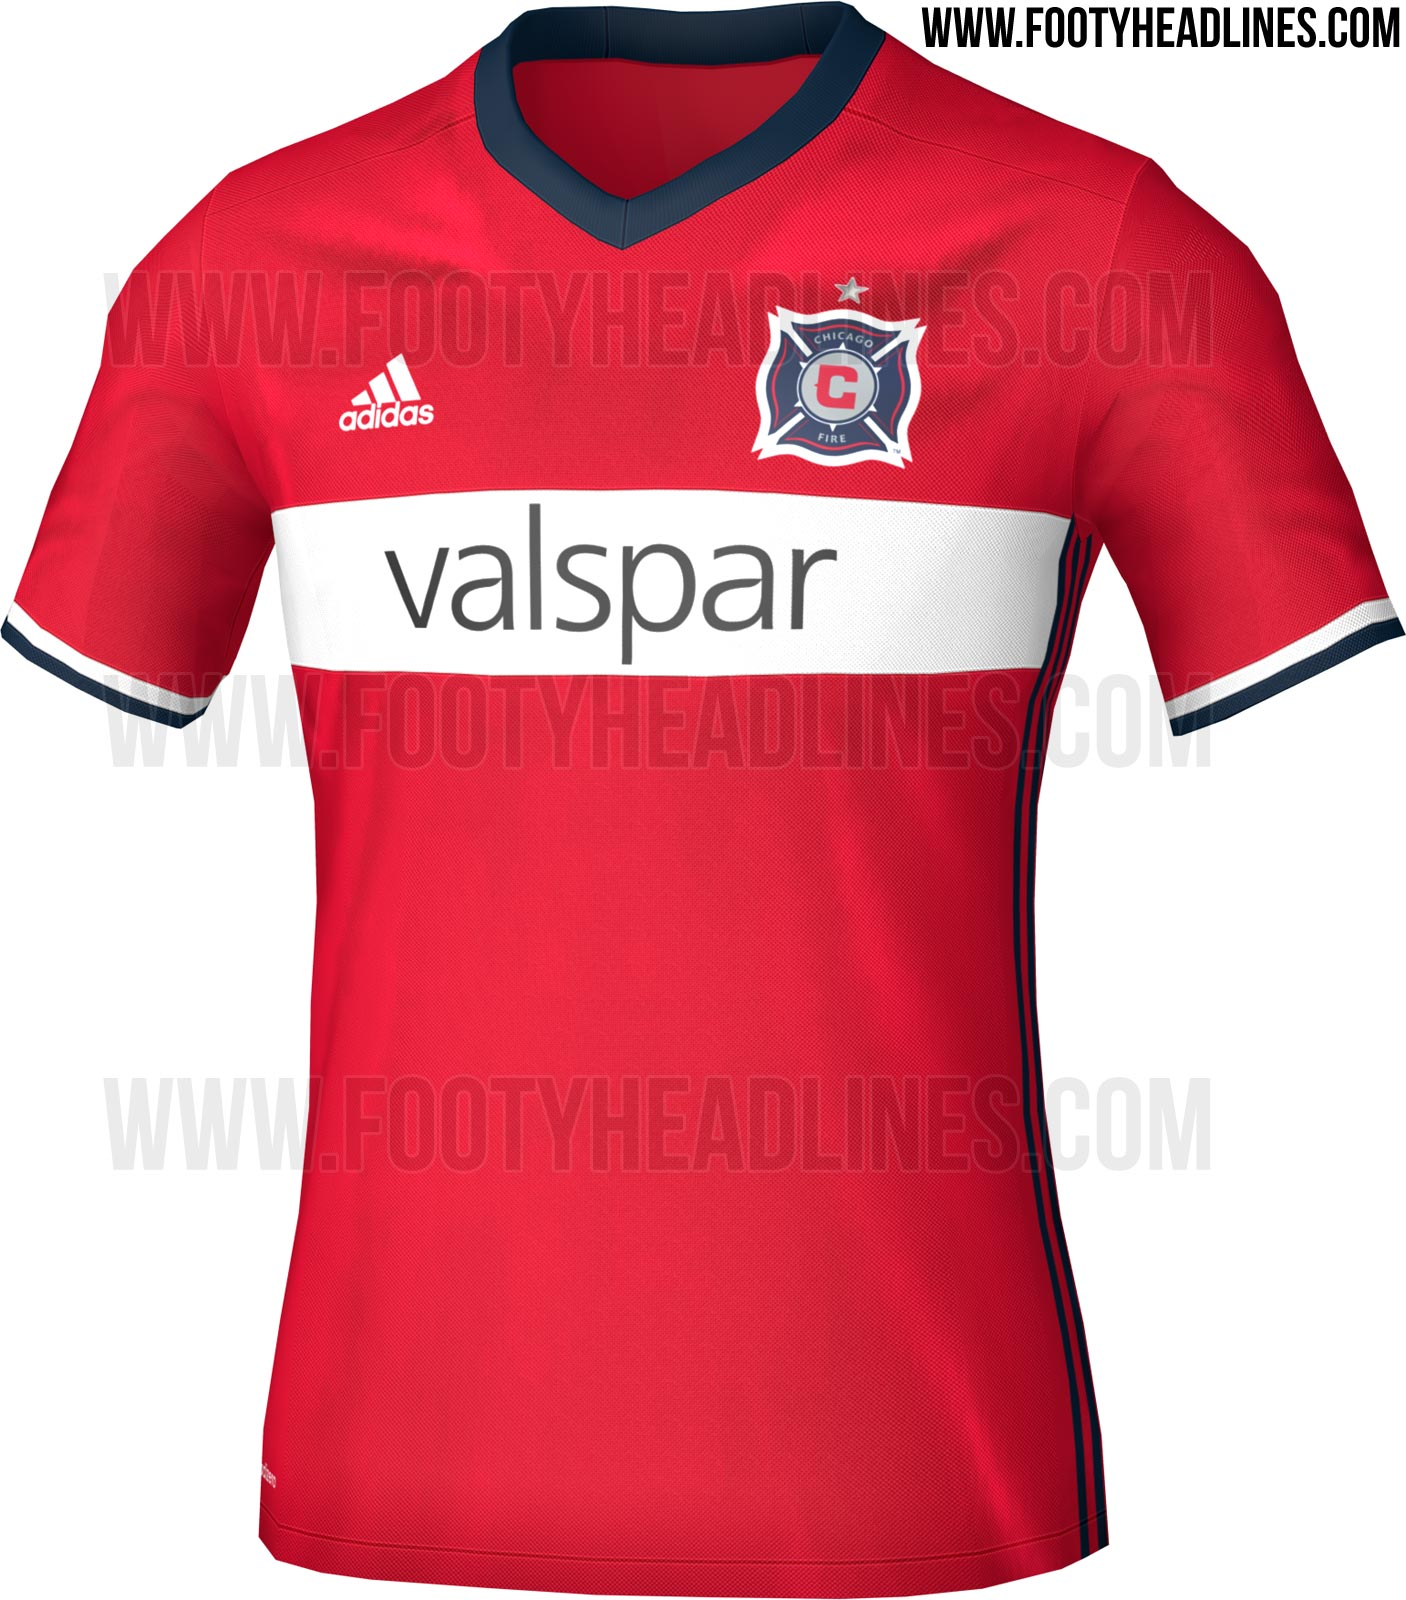 check out 522c8 6e18b chicago fire jersey 2015